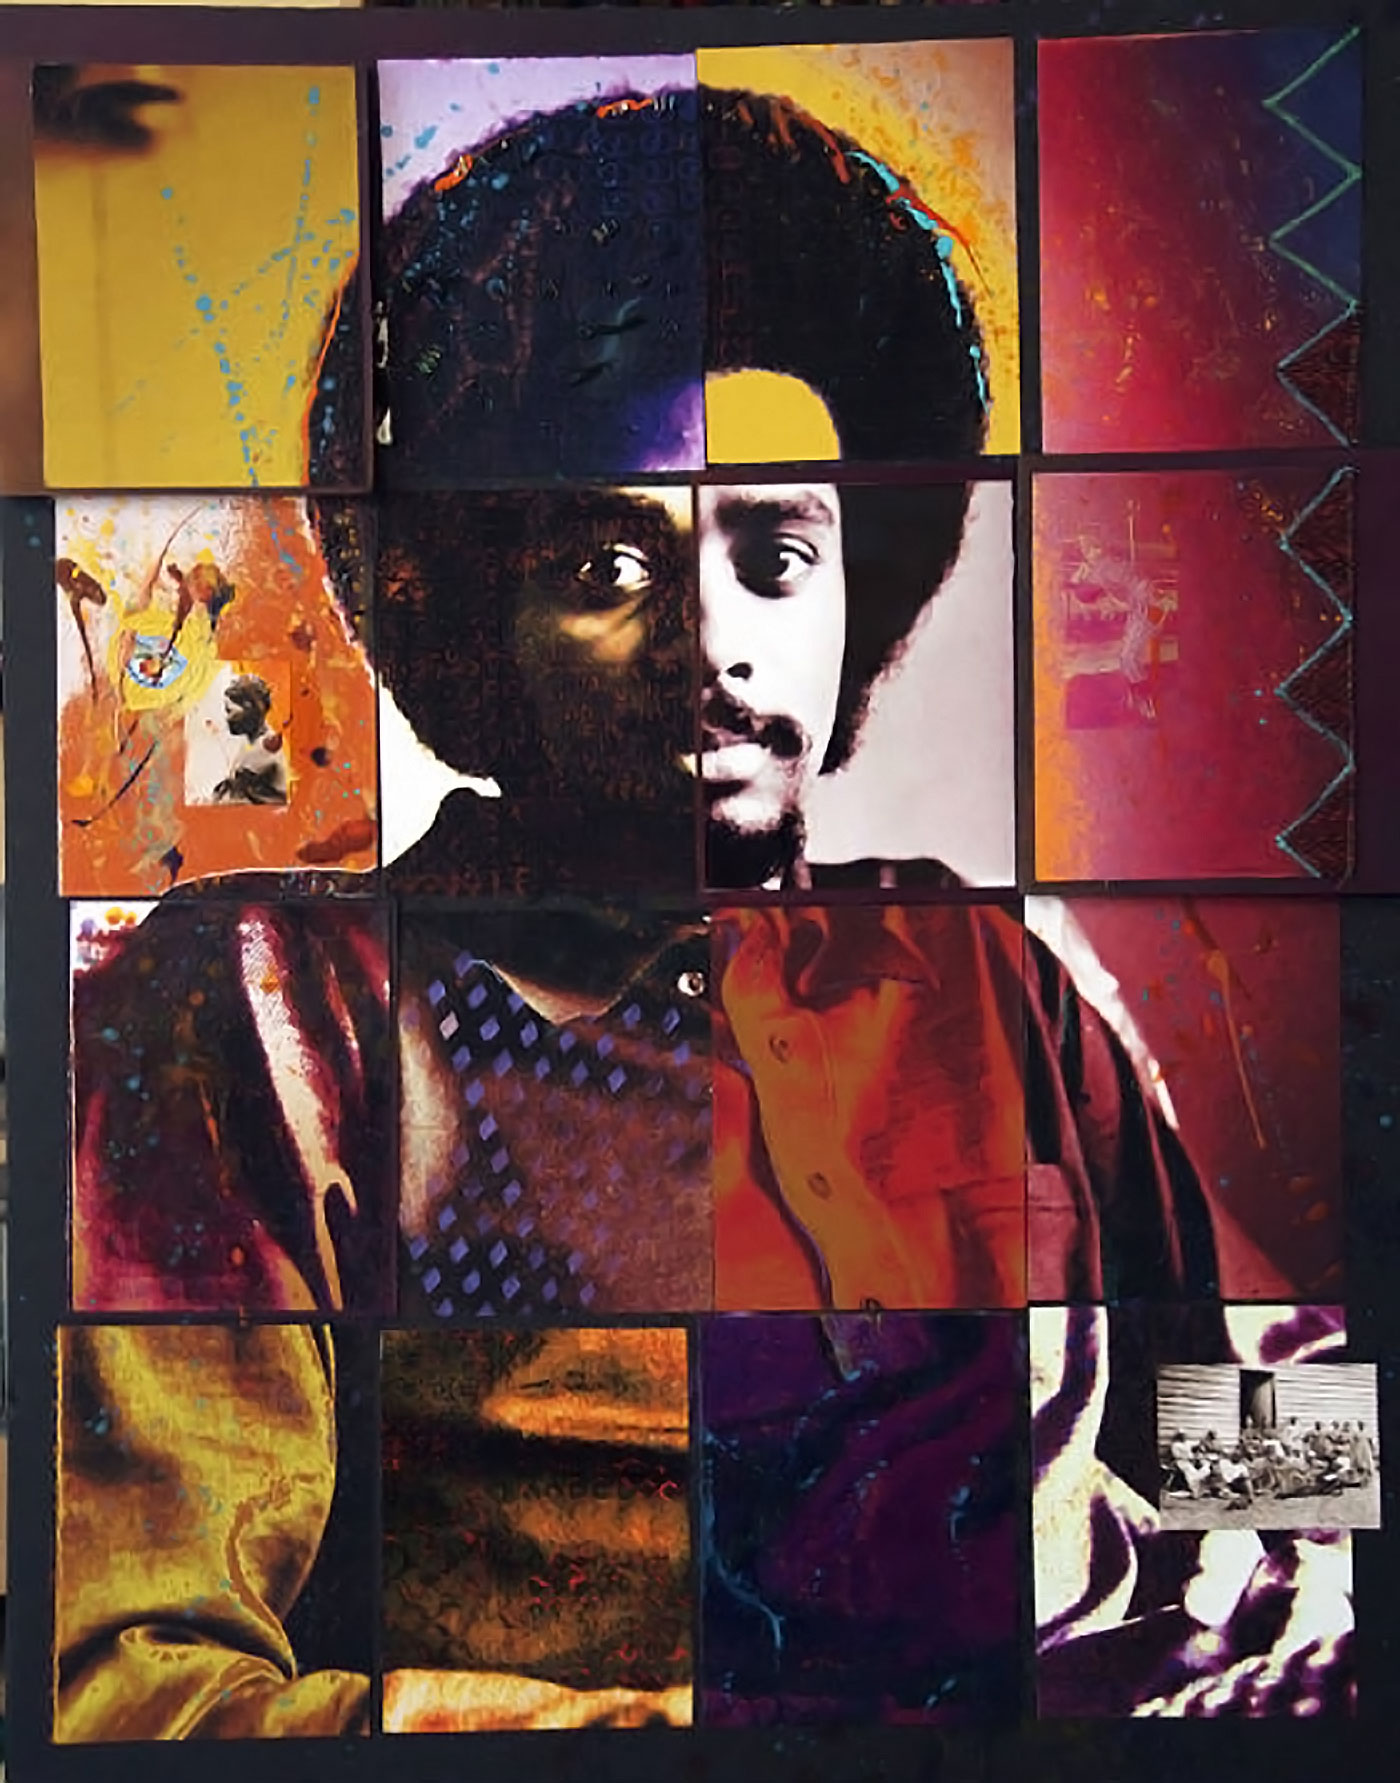 Portrait by Michael D. Harris in mixed media